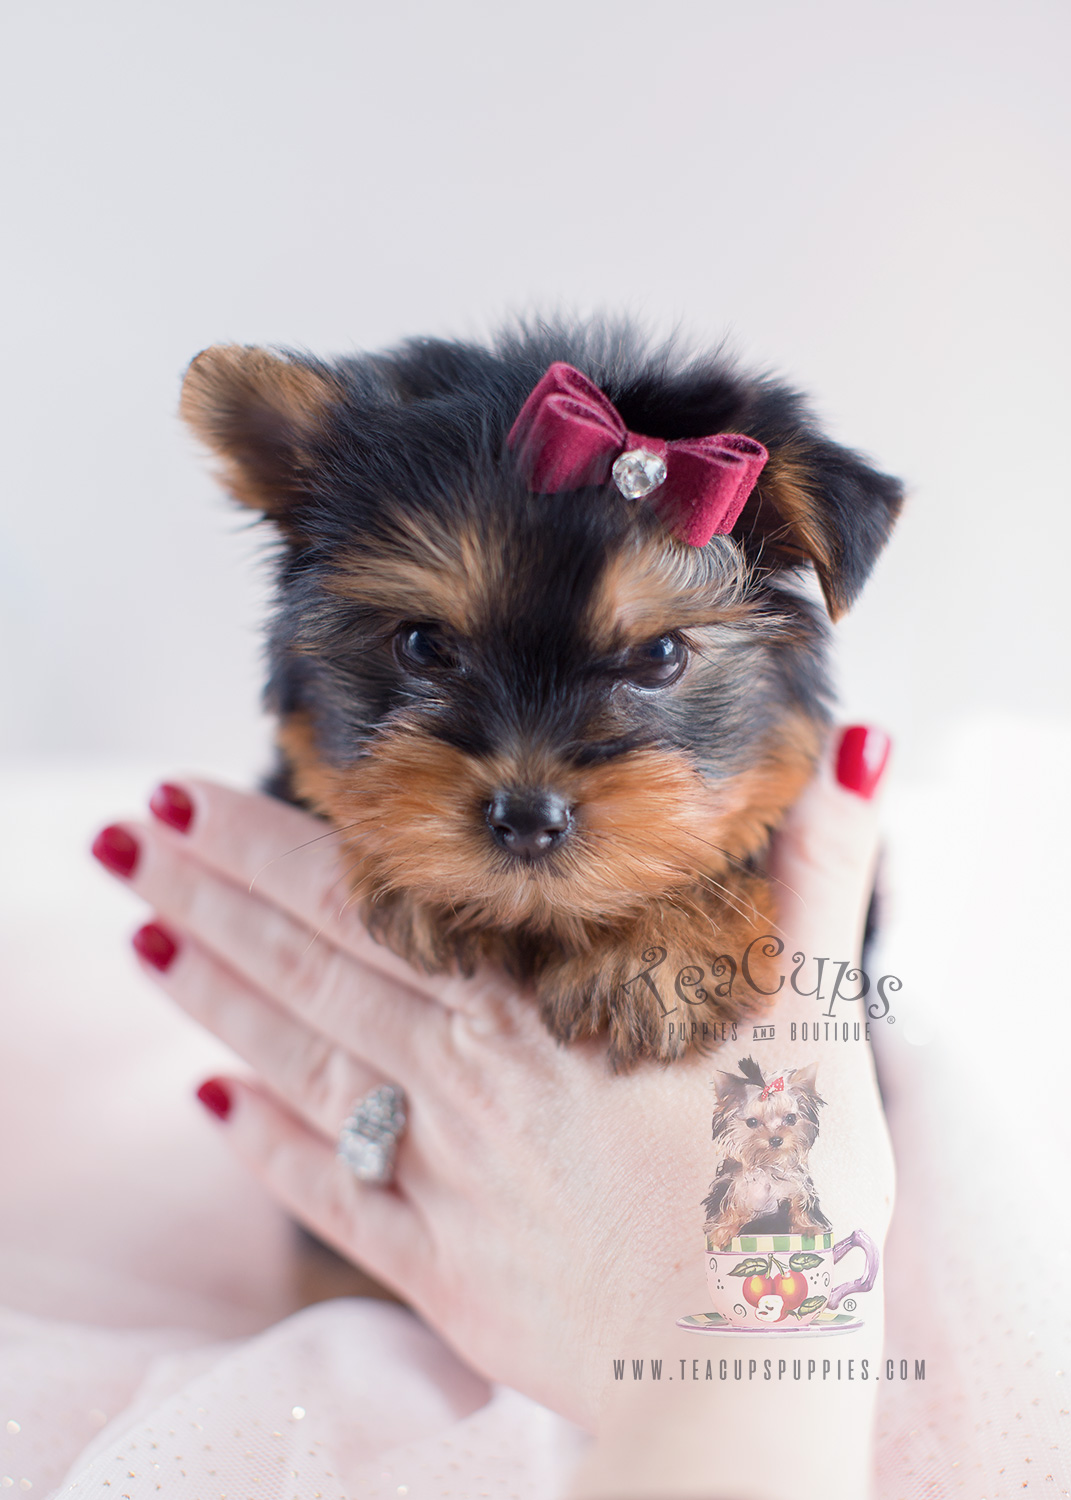 Yorkie Puppies For Sale South Florida  Teacups Puppies  Boutique